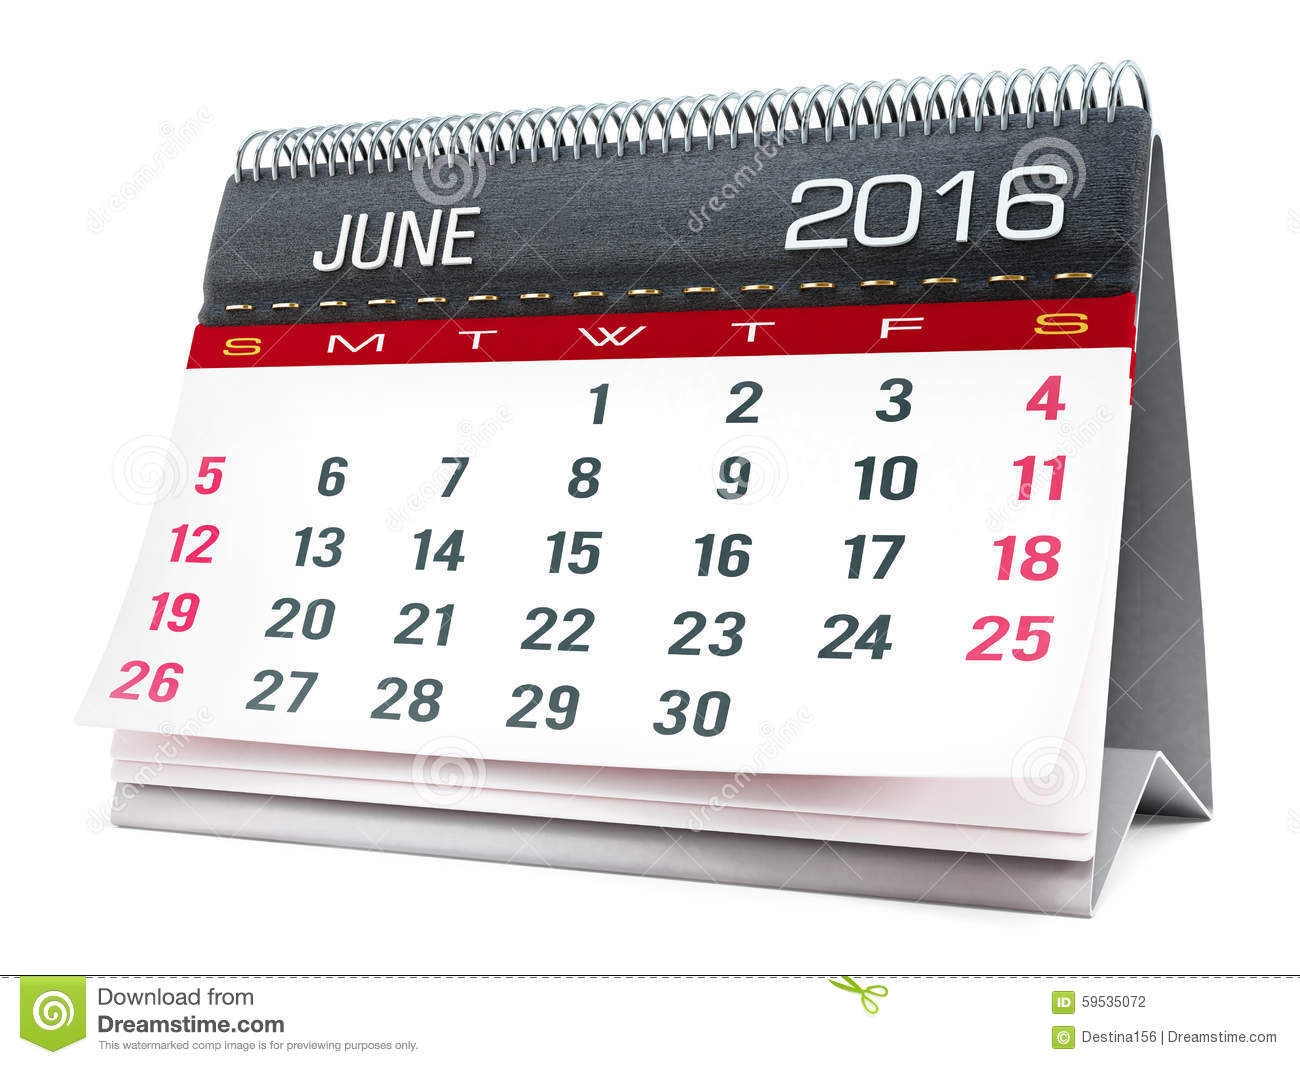 June 2016 Desktop Calendar Stock Illustration.